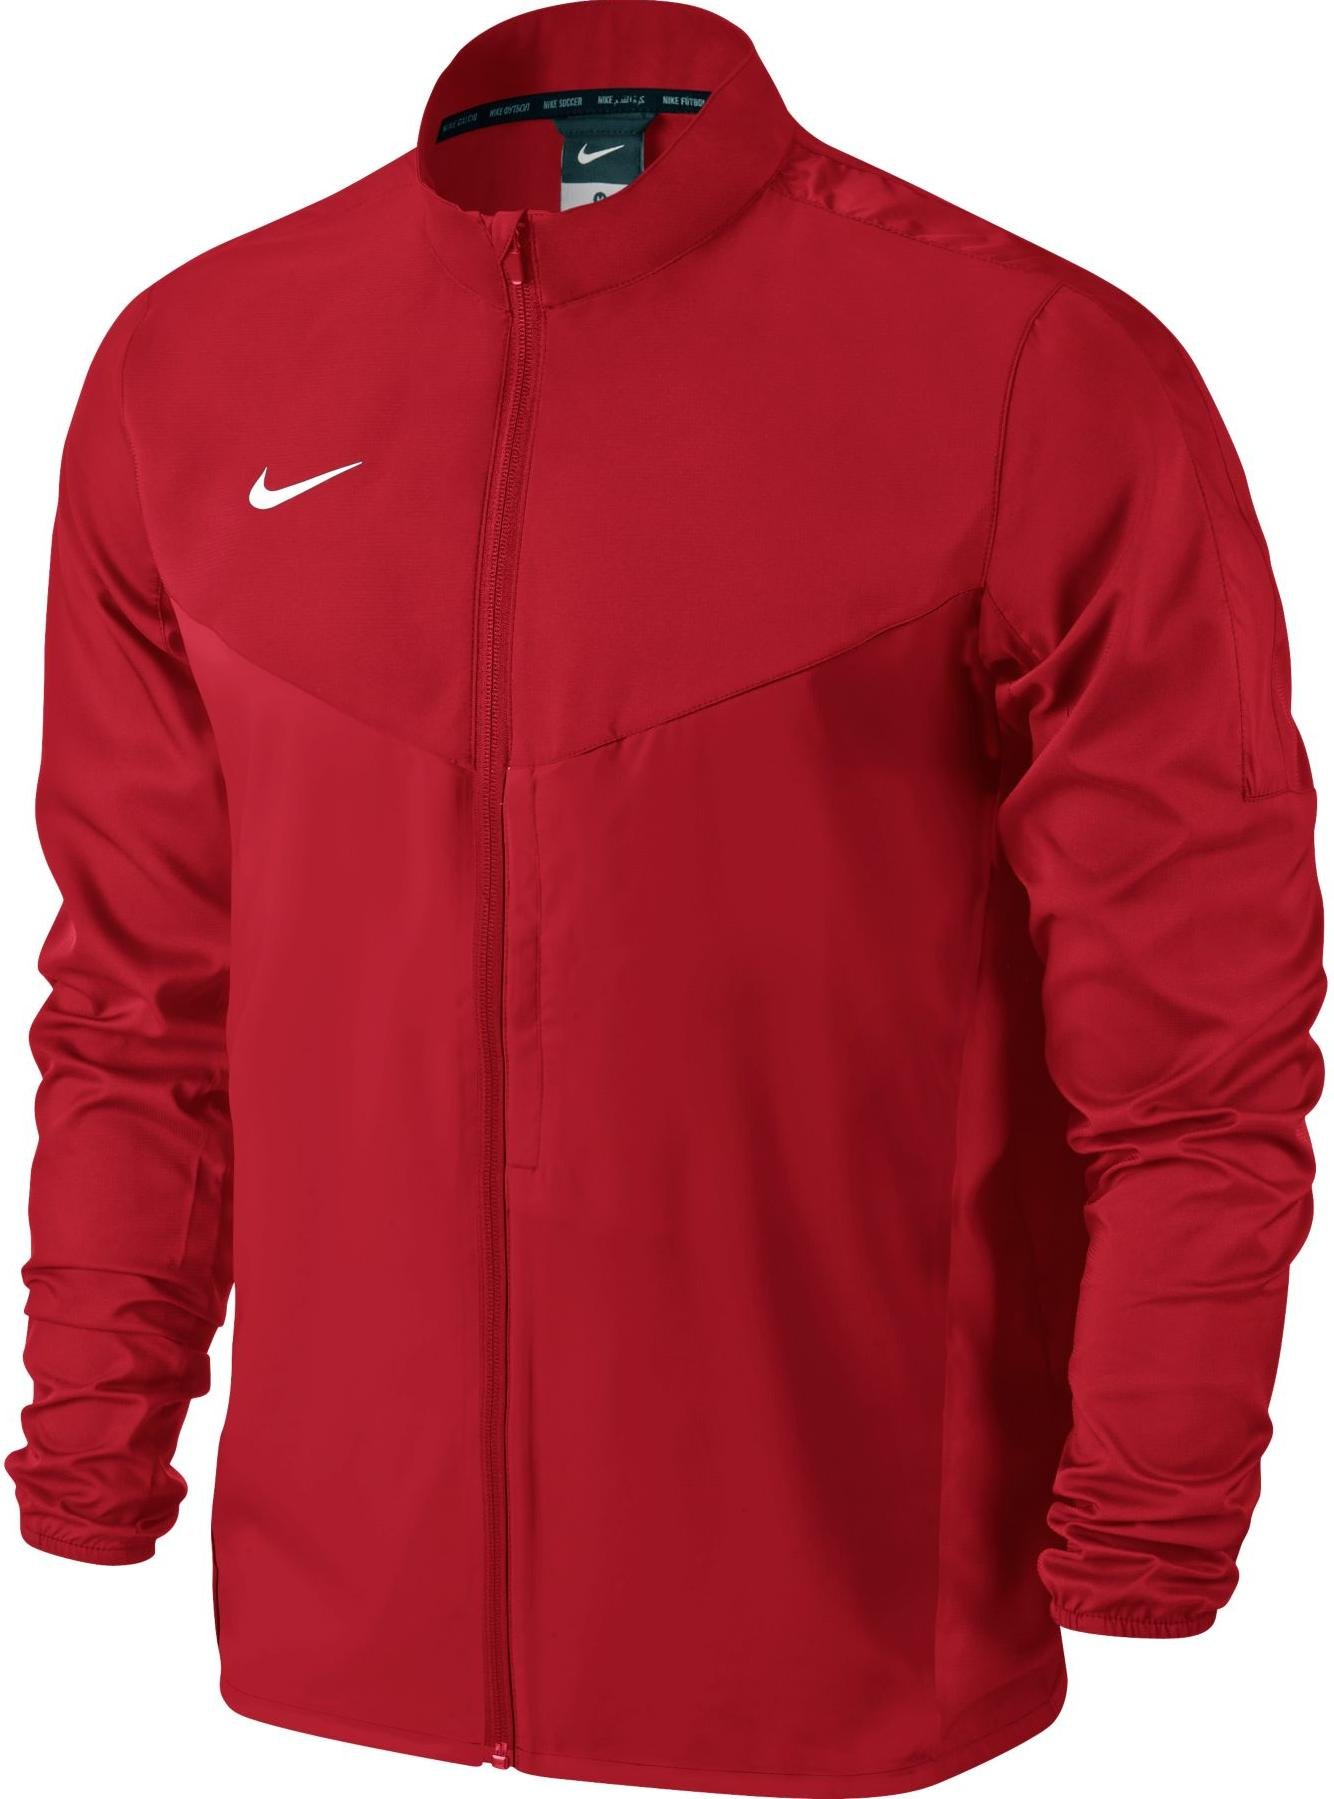 La chaqueta Nike Team Performance Shield Jkt puede ser